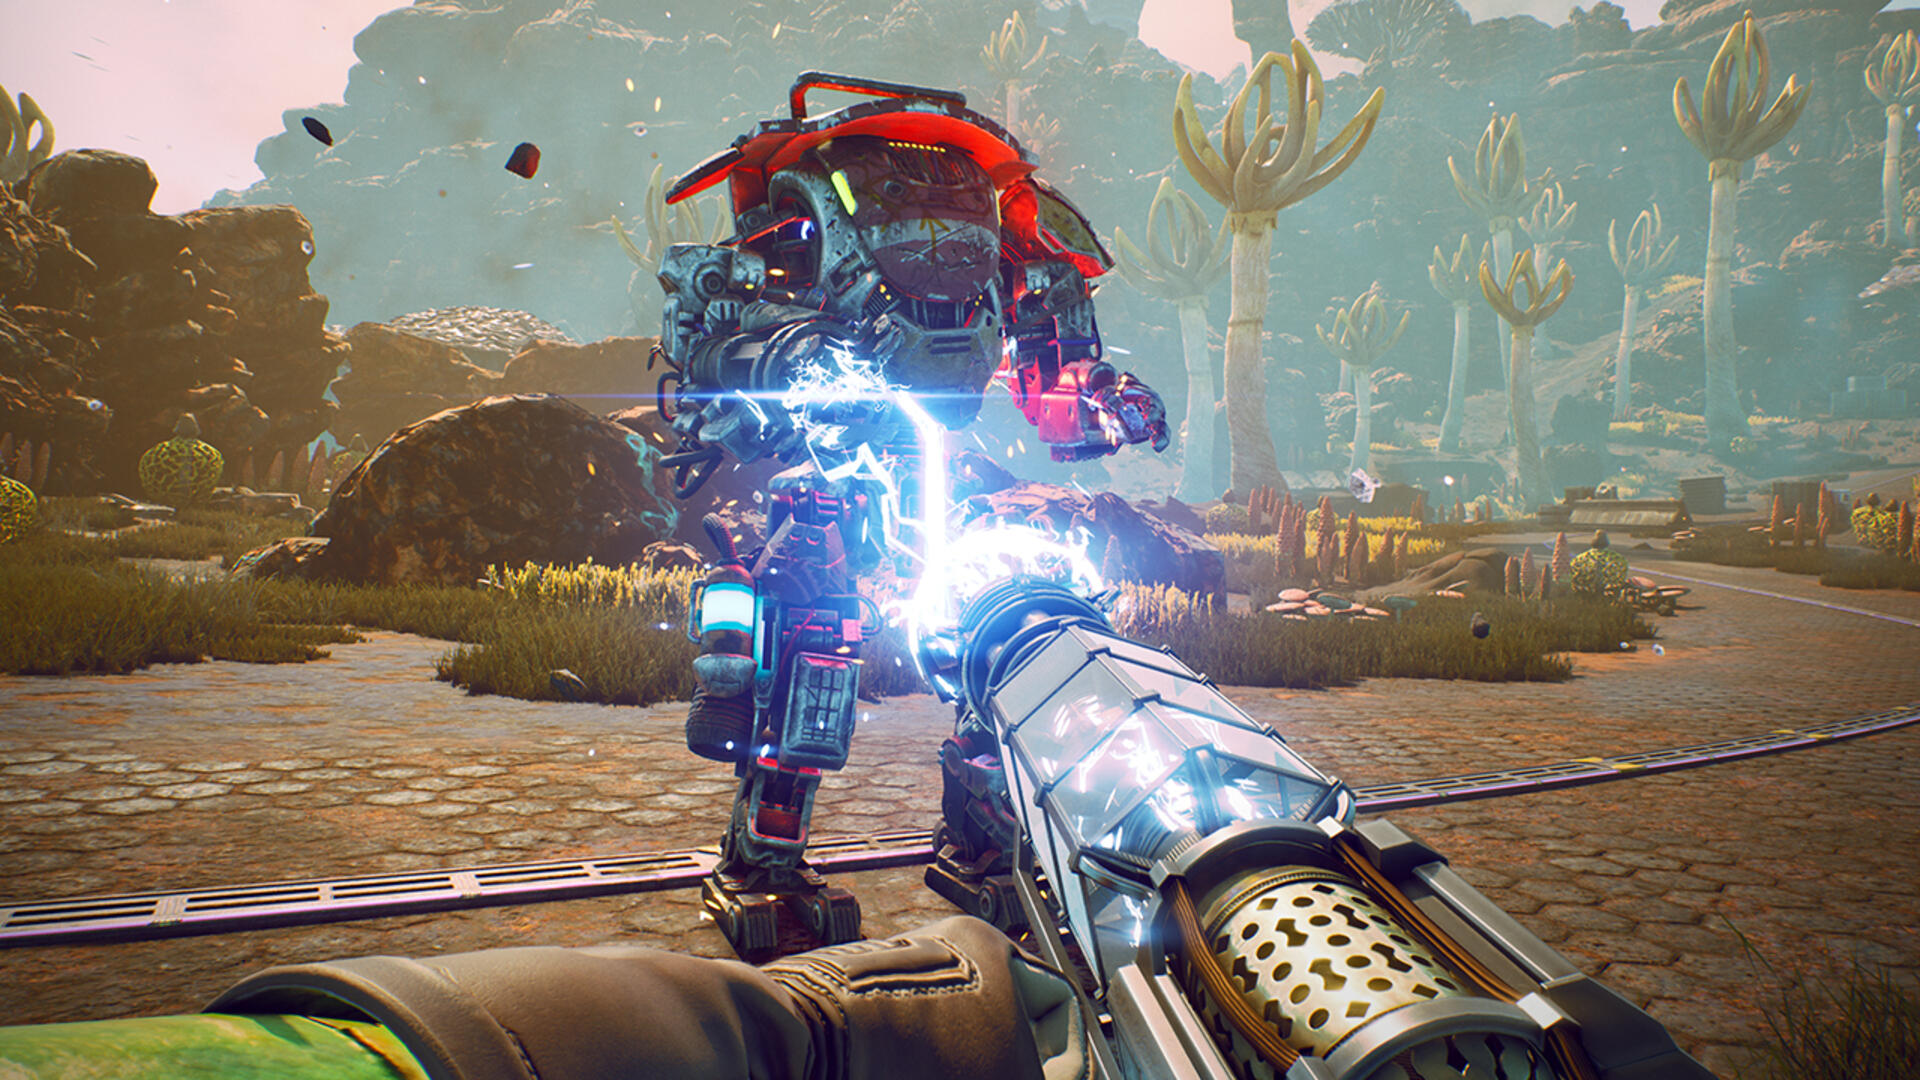 Are There Romance Options in The Outer Worlds?